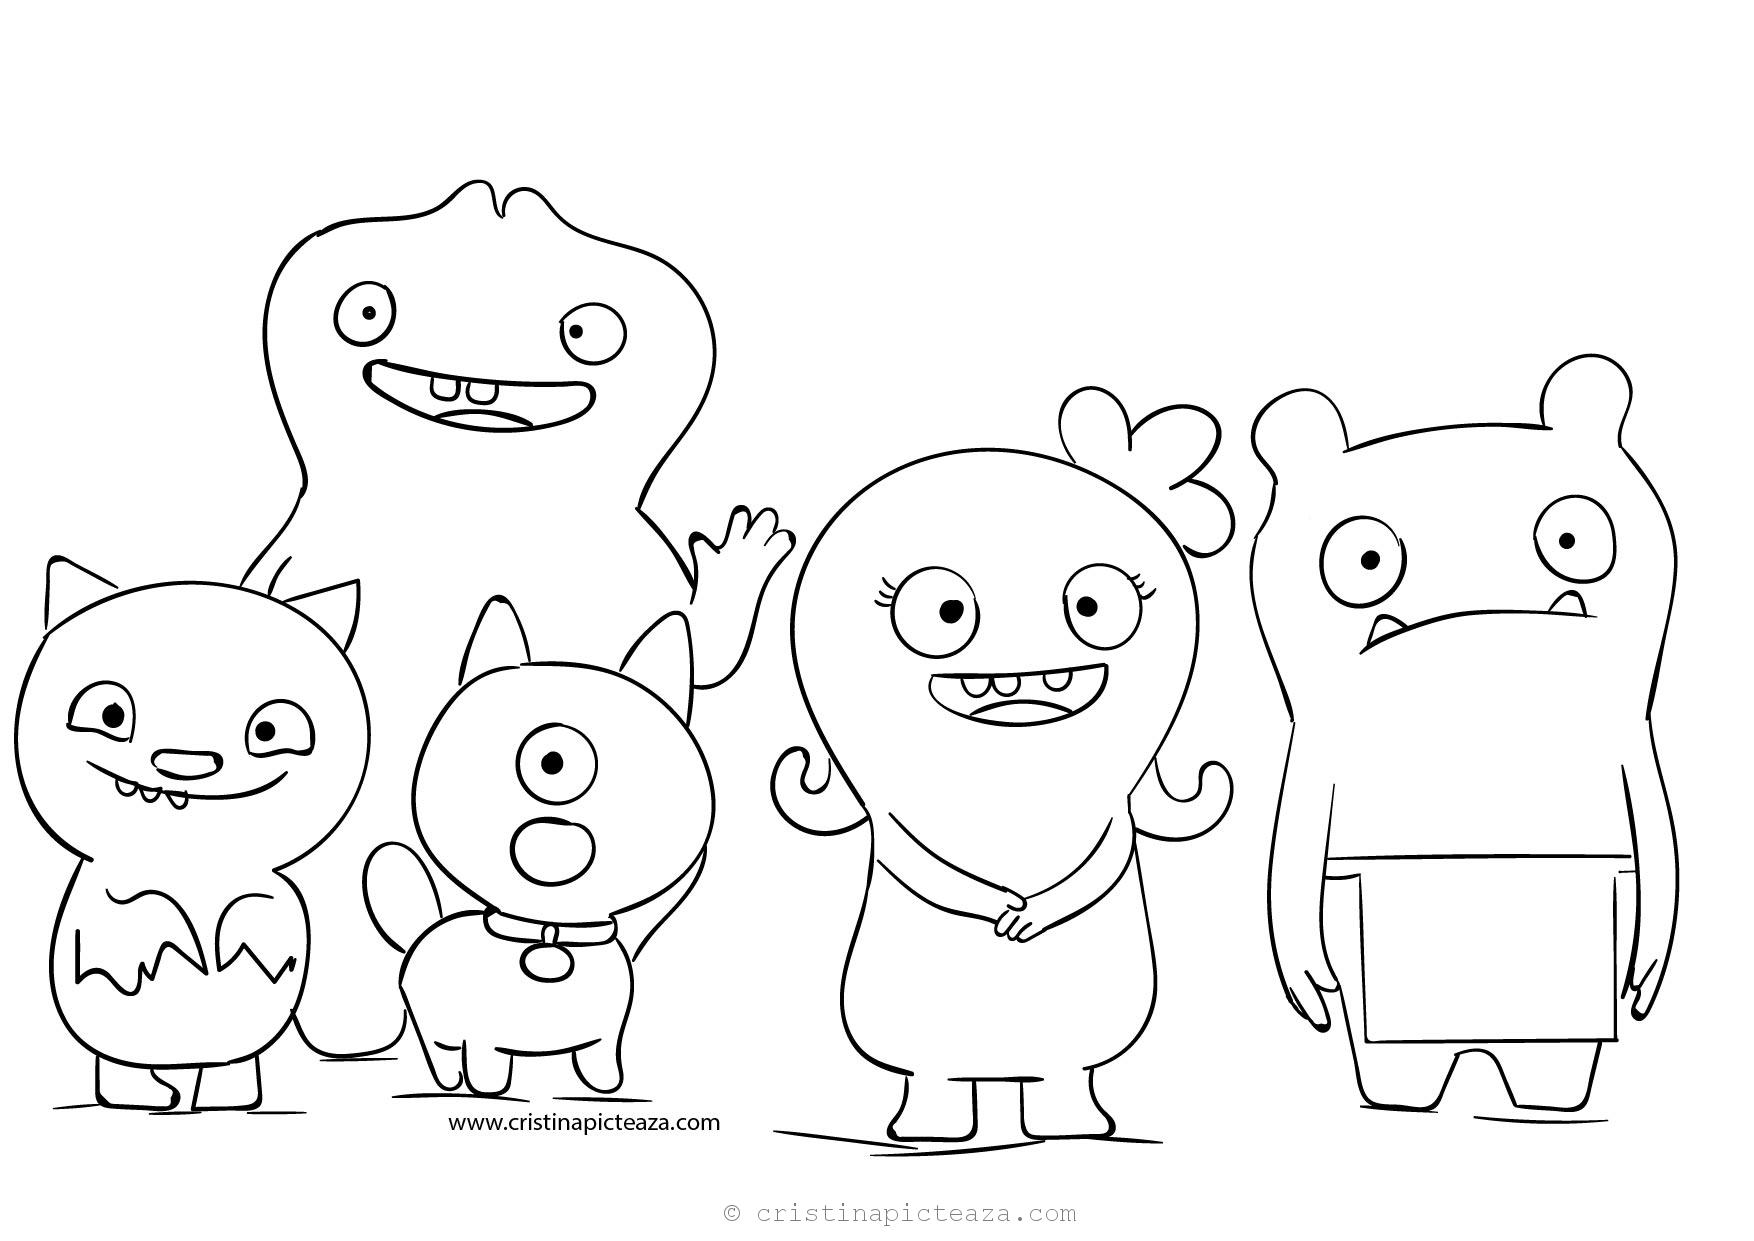 Ugly Dolls Coloring Pages Download Uglydolls For Coloring